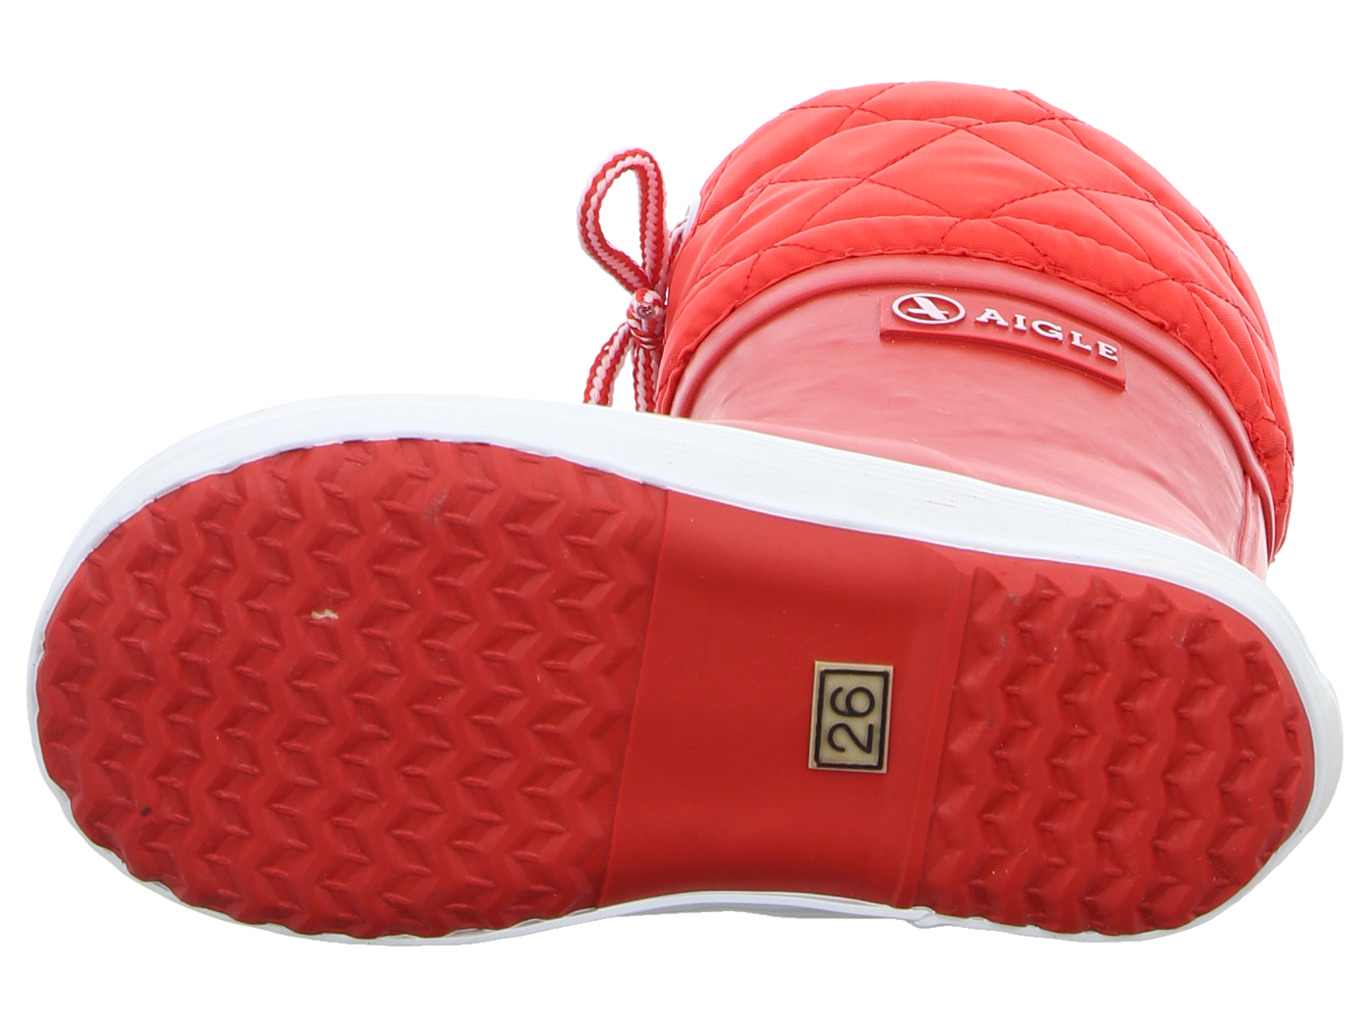 aigle_giboulee_rot_24538_rouge_8231